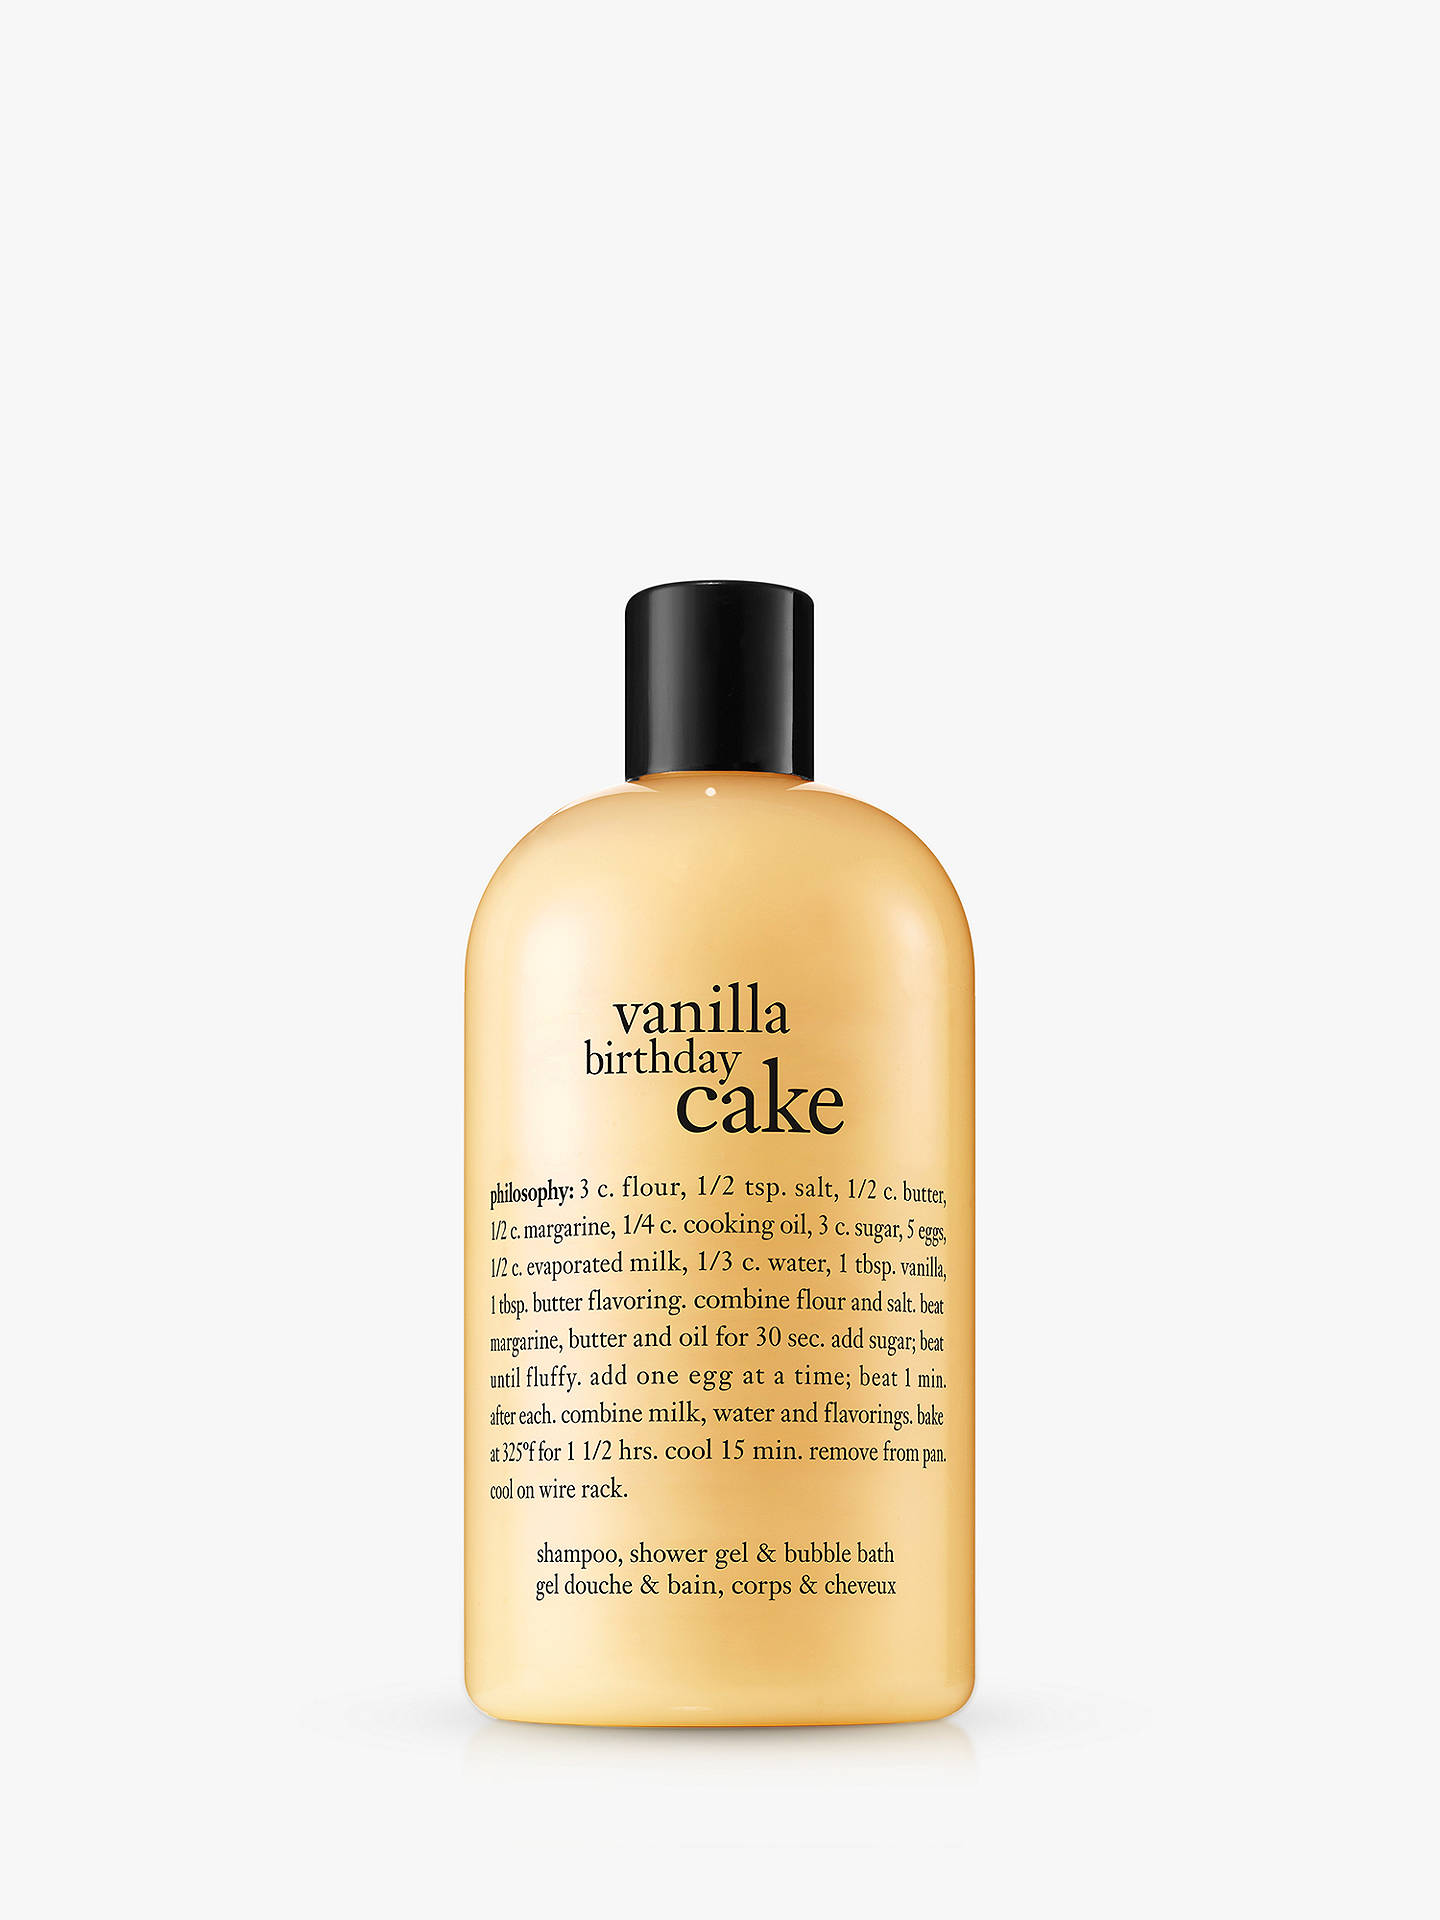 BuyPhilosophy Vanilla Birthday Cake Shampoo Shower Gel Bubble Bath 480ml Online At Johnlewis